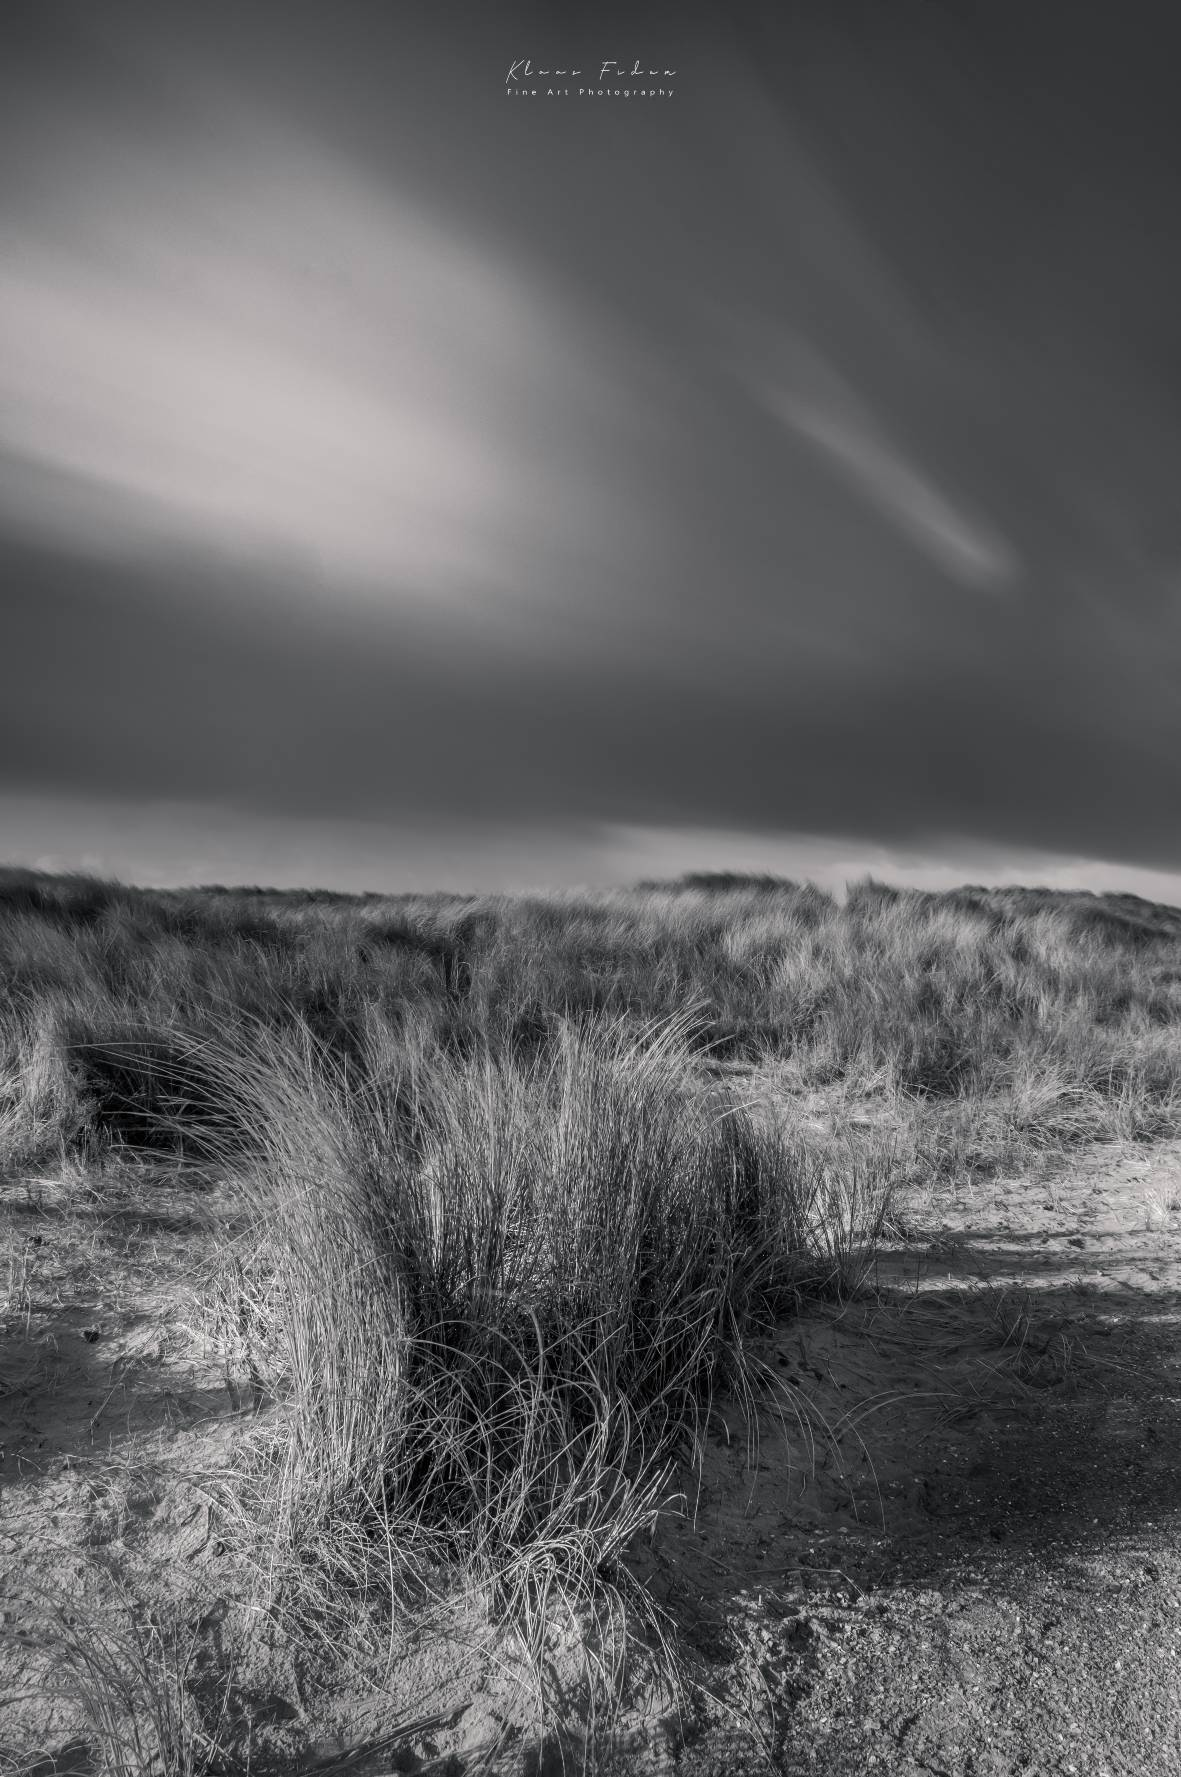 At the Northsea dunes